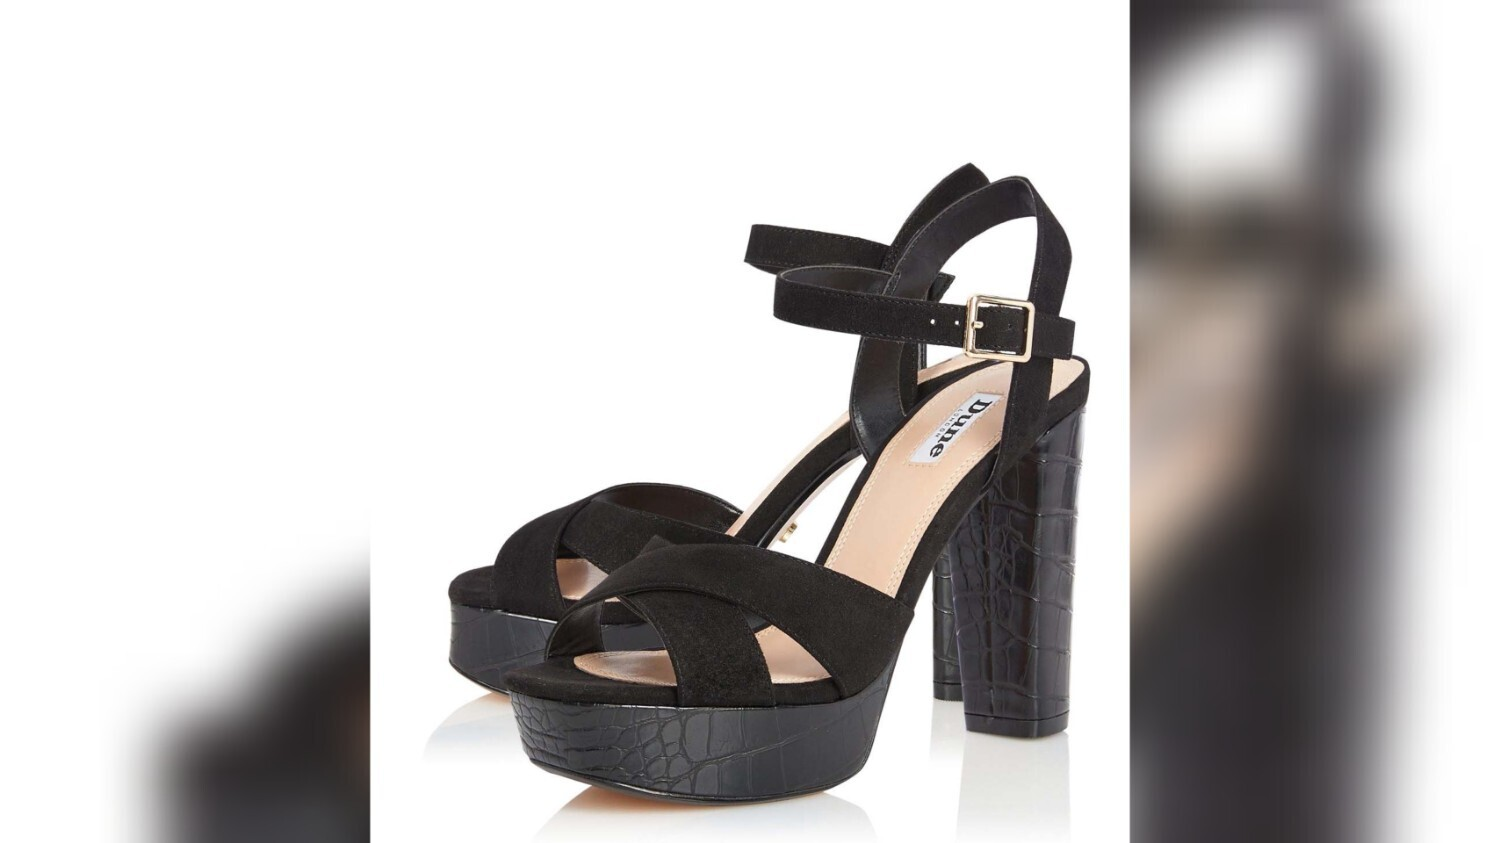 Black Mexican Di Cross Strap Sandals from Dune London